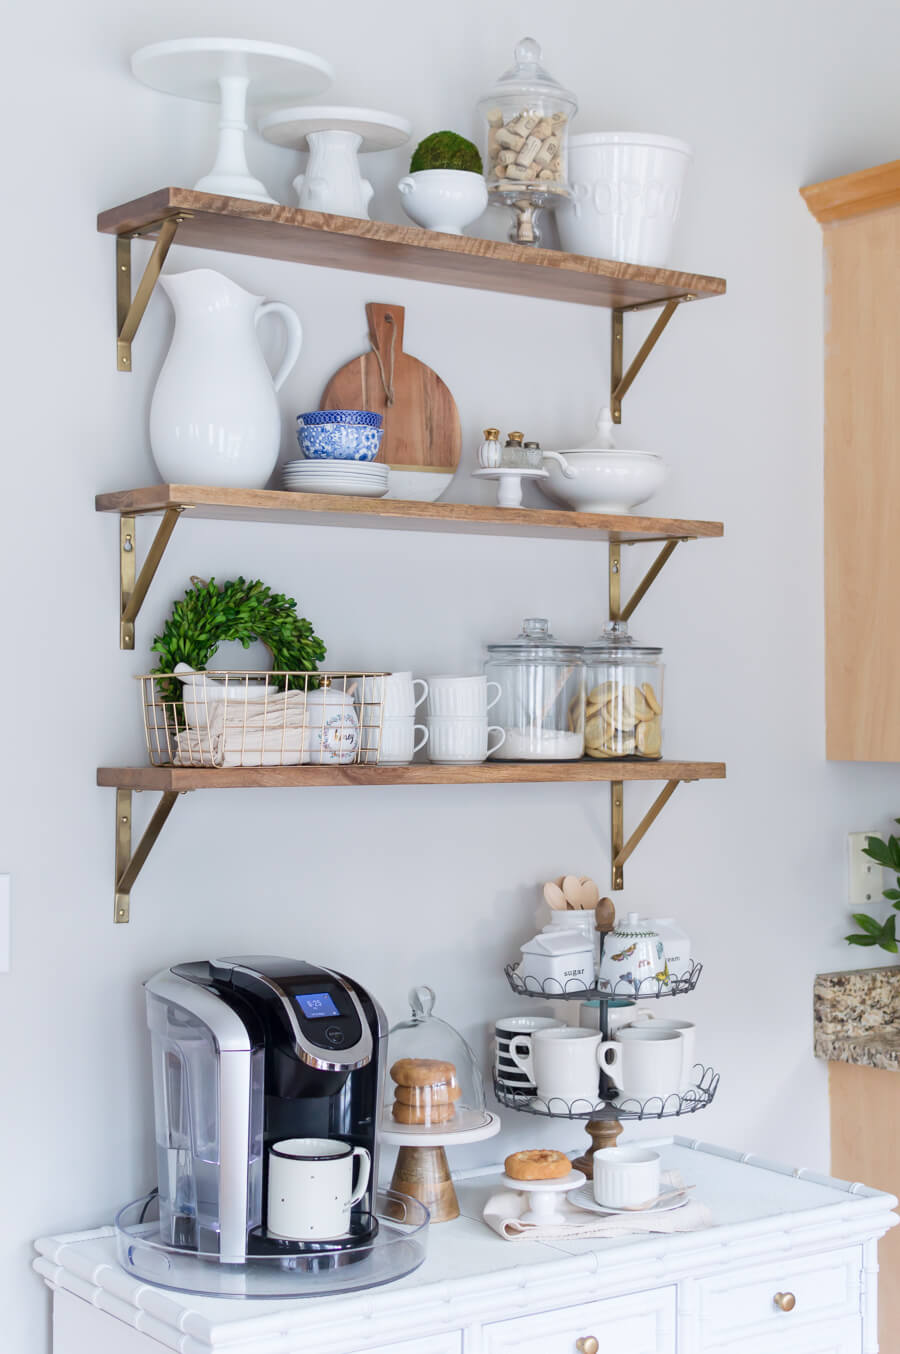 21 gorgeous open kitchen shelving ideas you can DIY